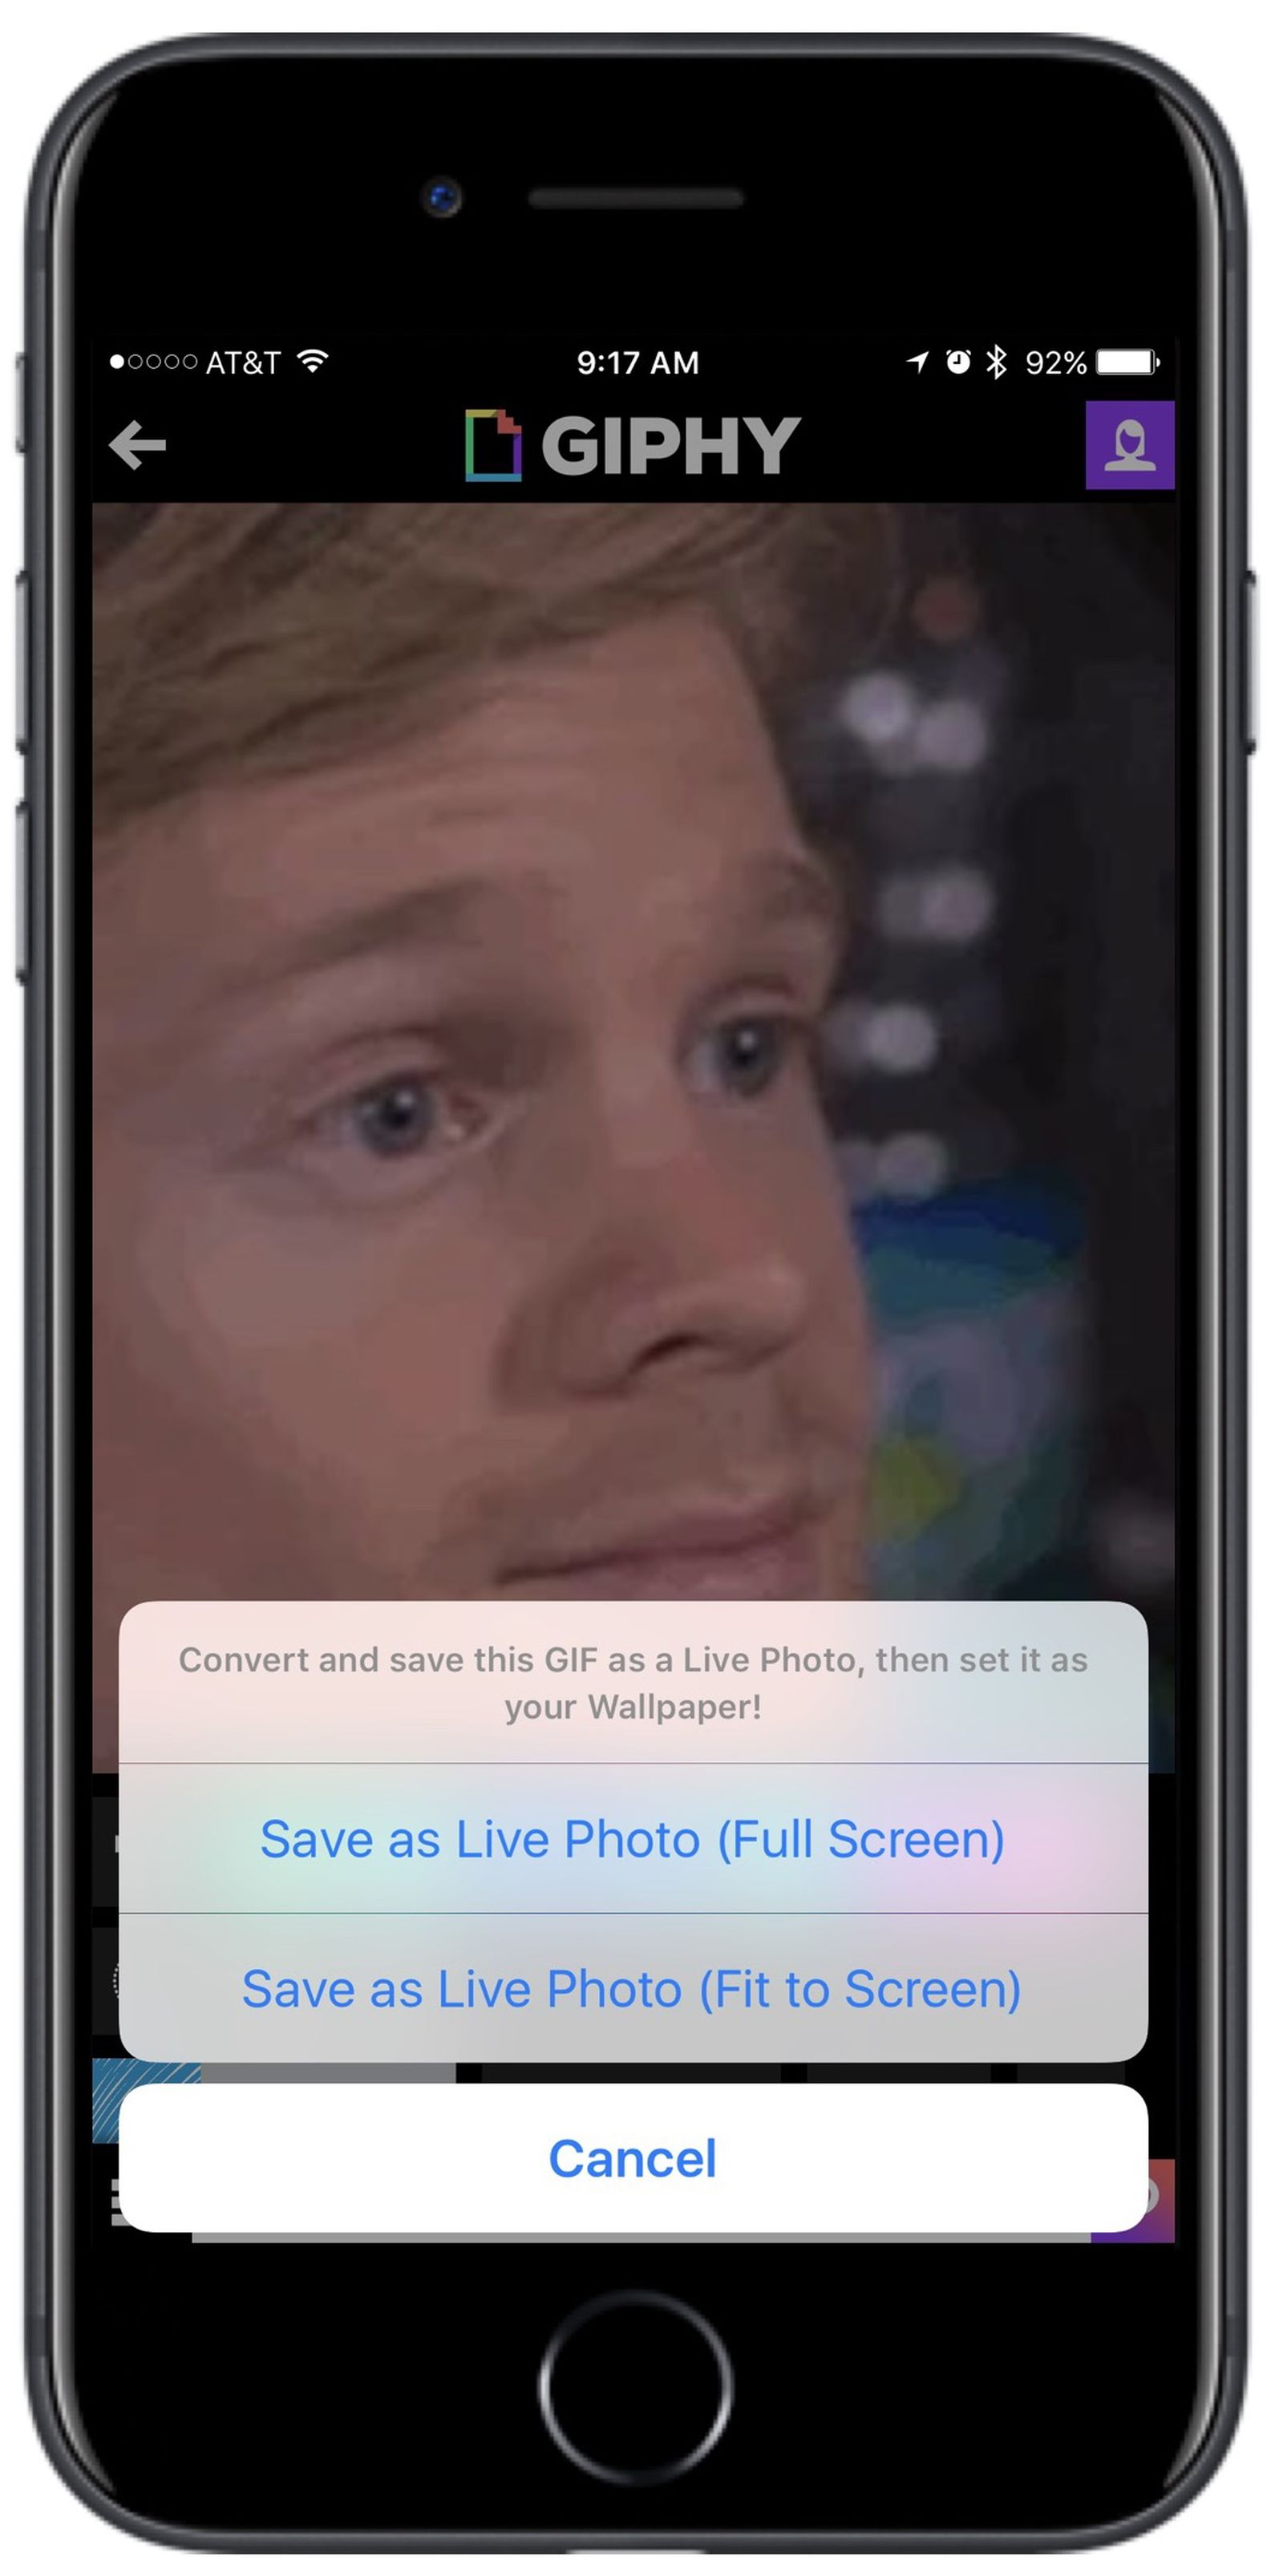 Giphy Ios App Gains Ability To Turn Gifs Into Live Photos Macrumors